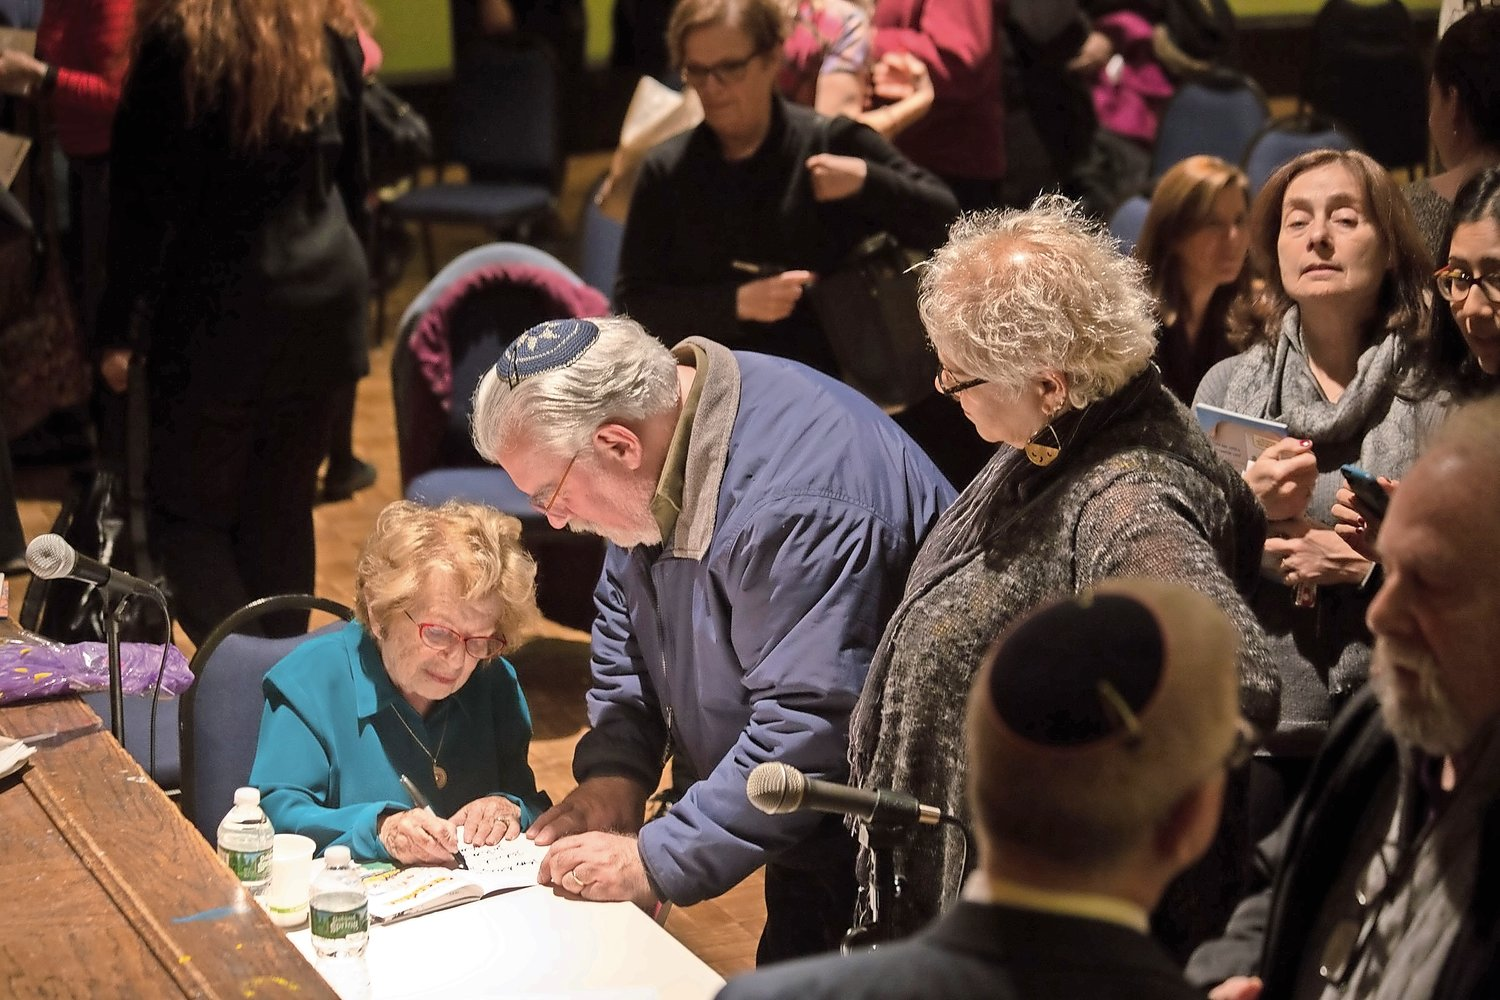 Dr. Ruth Westheimer signs one of her books for an audience member after her talk at the Conservative Synagogue Adath Israel of Riverdale.